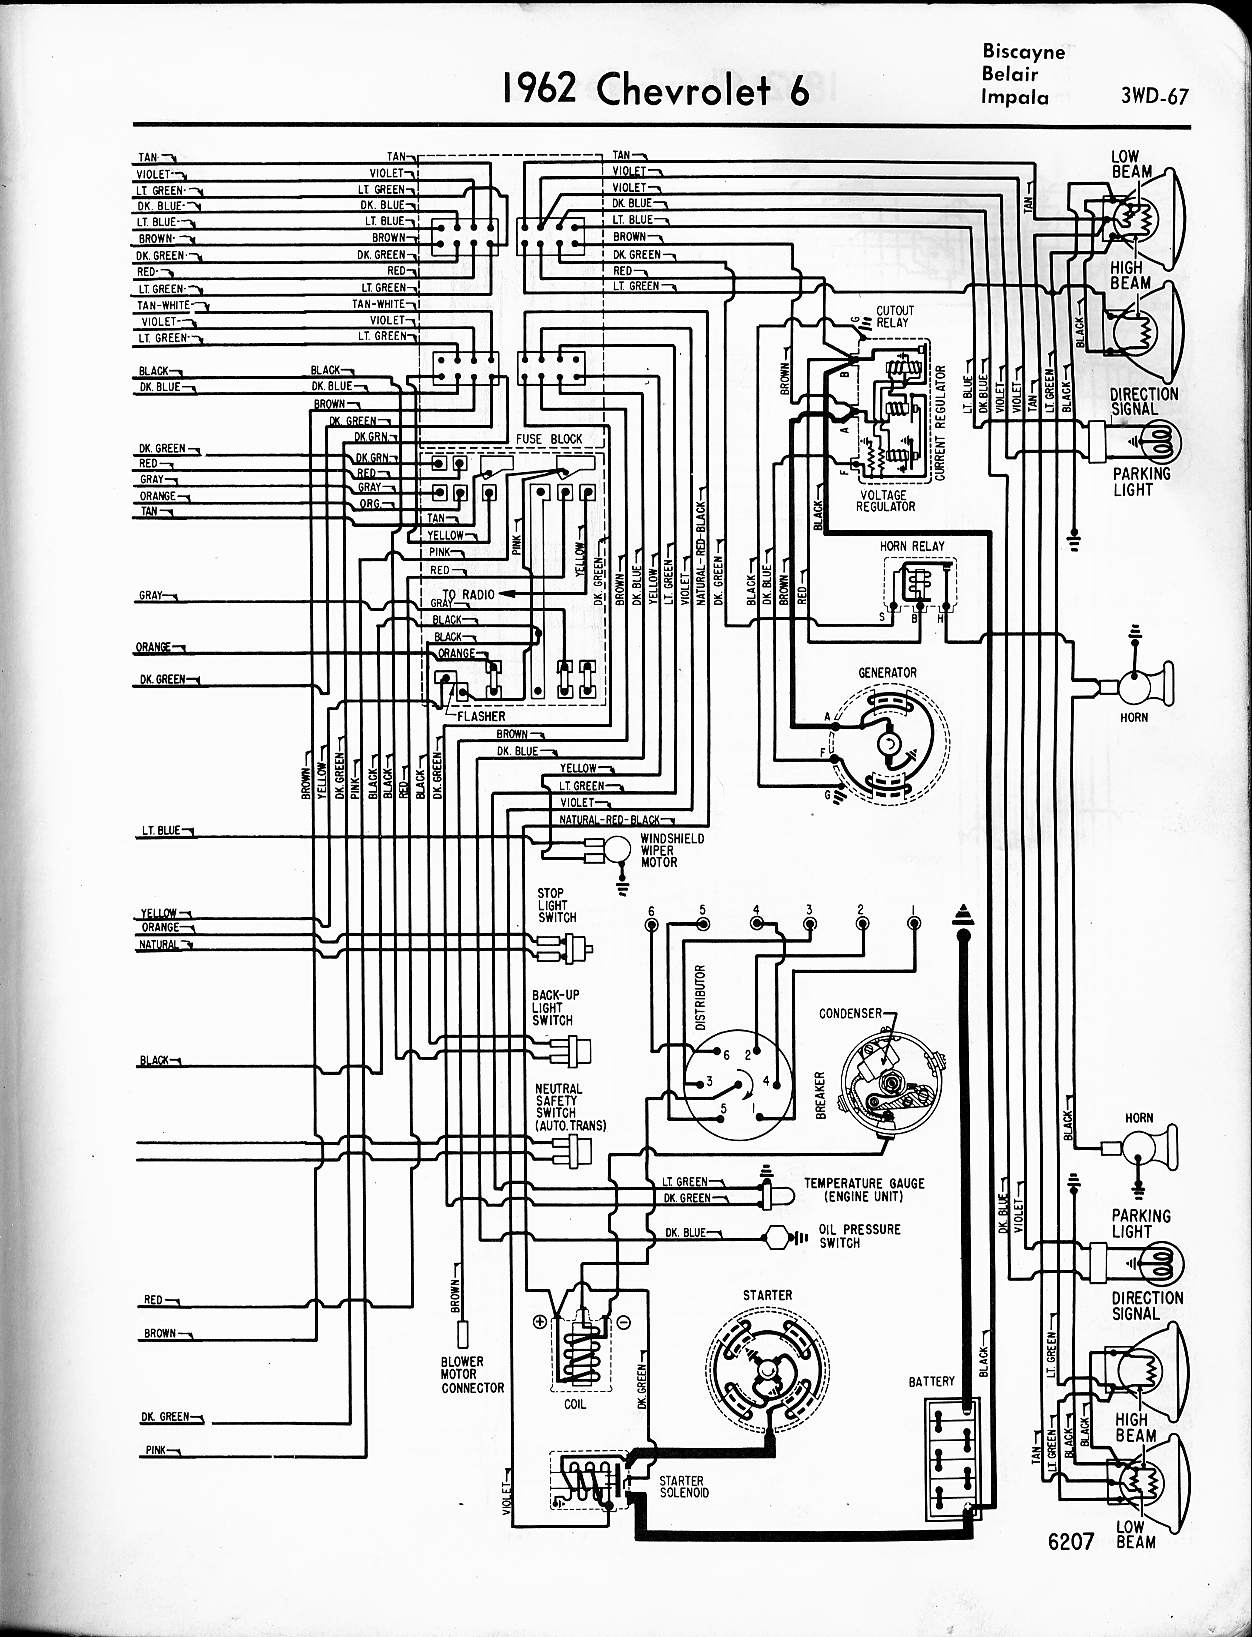 1962 chevy ii wiring diagram